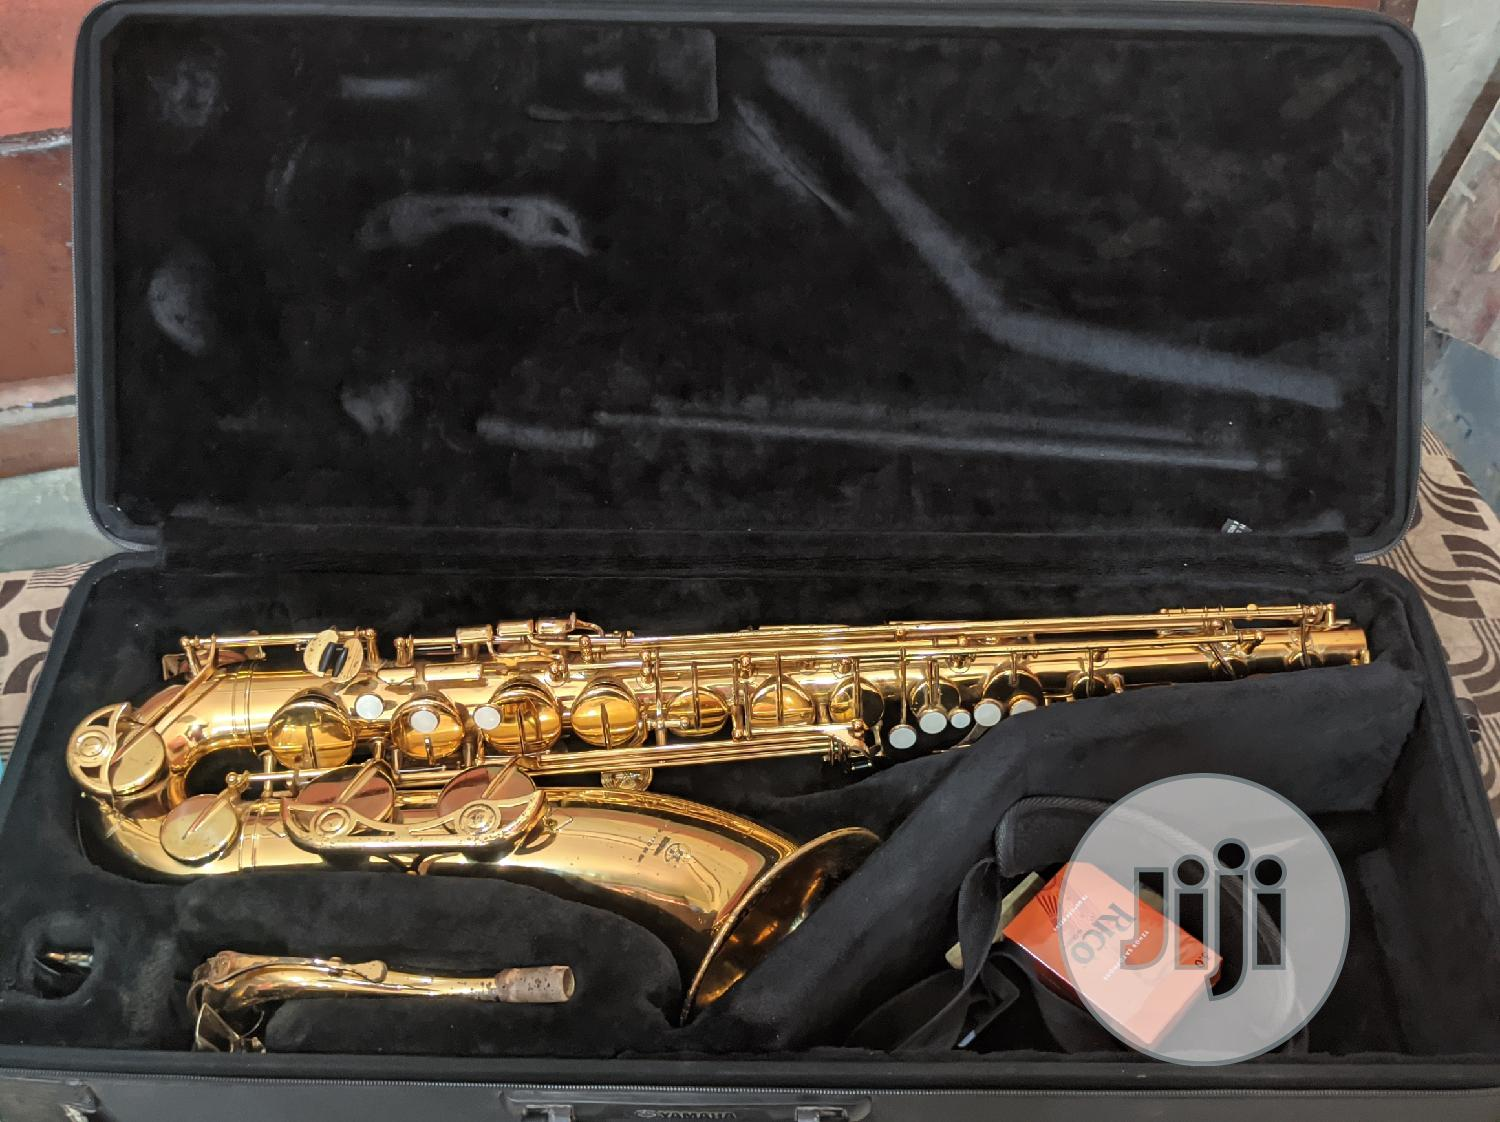 Original Yamaha Yts 275 Tenor Saxophone (Sax) | Musical Instruments & Gear for sale in Ikeja, Lagos State, Nigeria